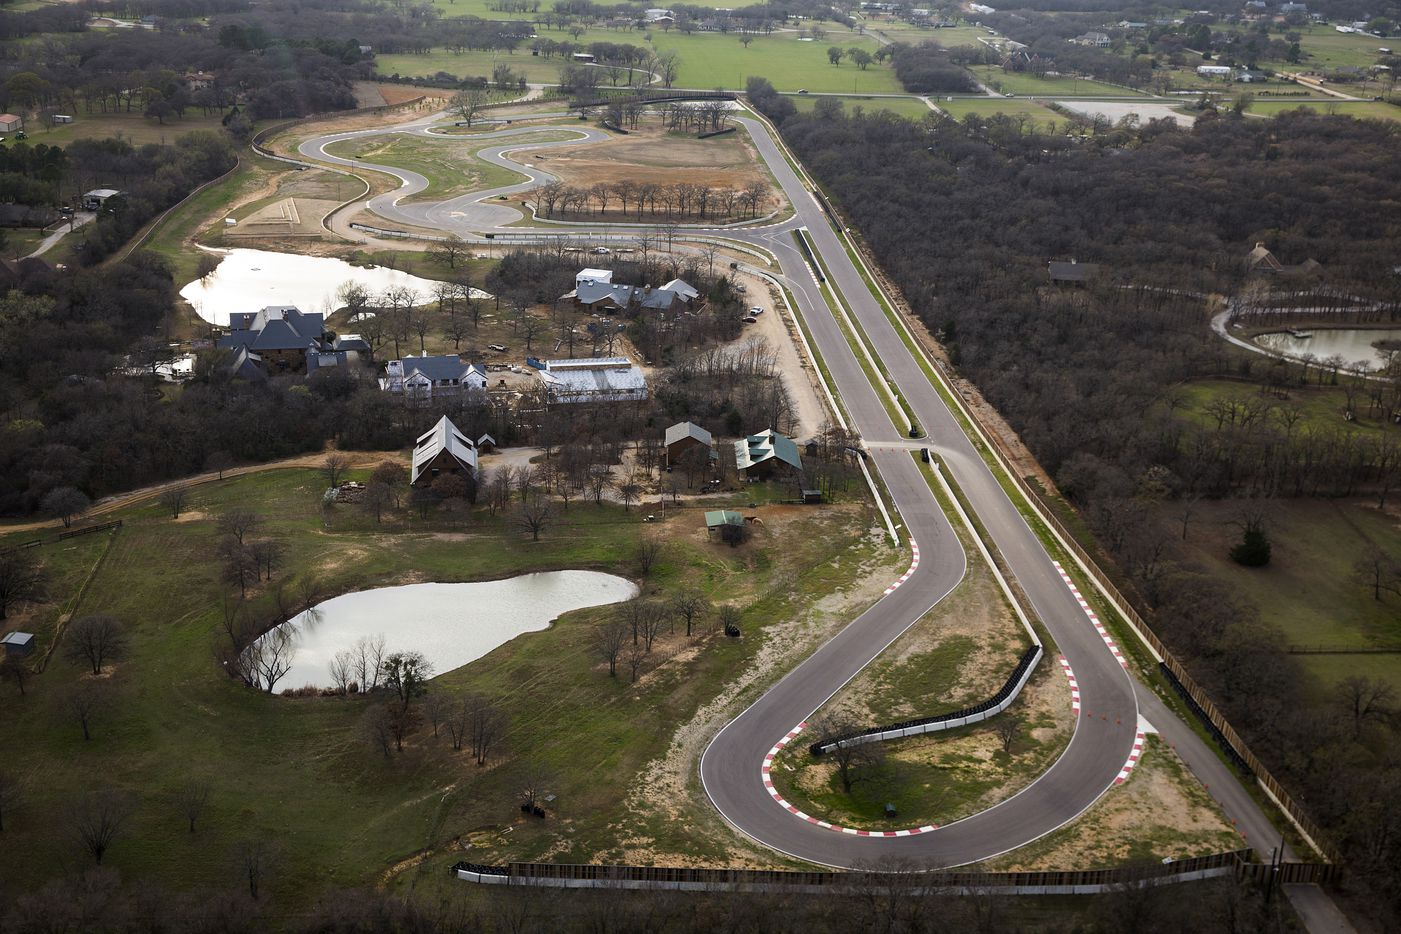 The site of the Toyota executive retreat in Denton County includes a racetrack and buildings between Hilltop Road and FM1830 on the outskirts of Argyle.